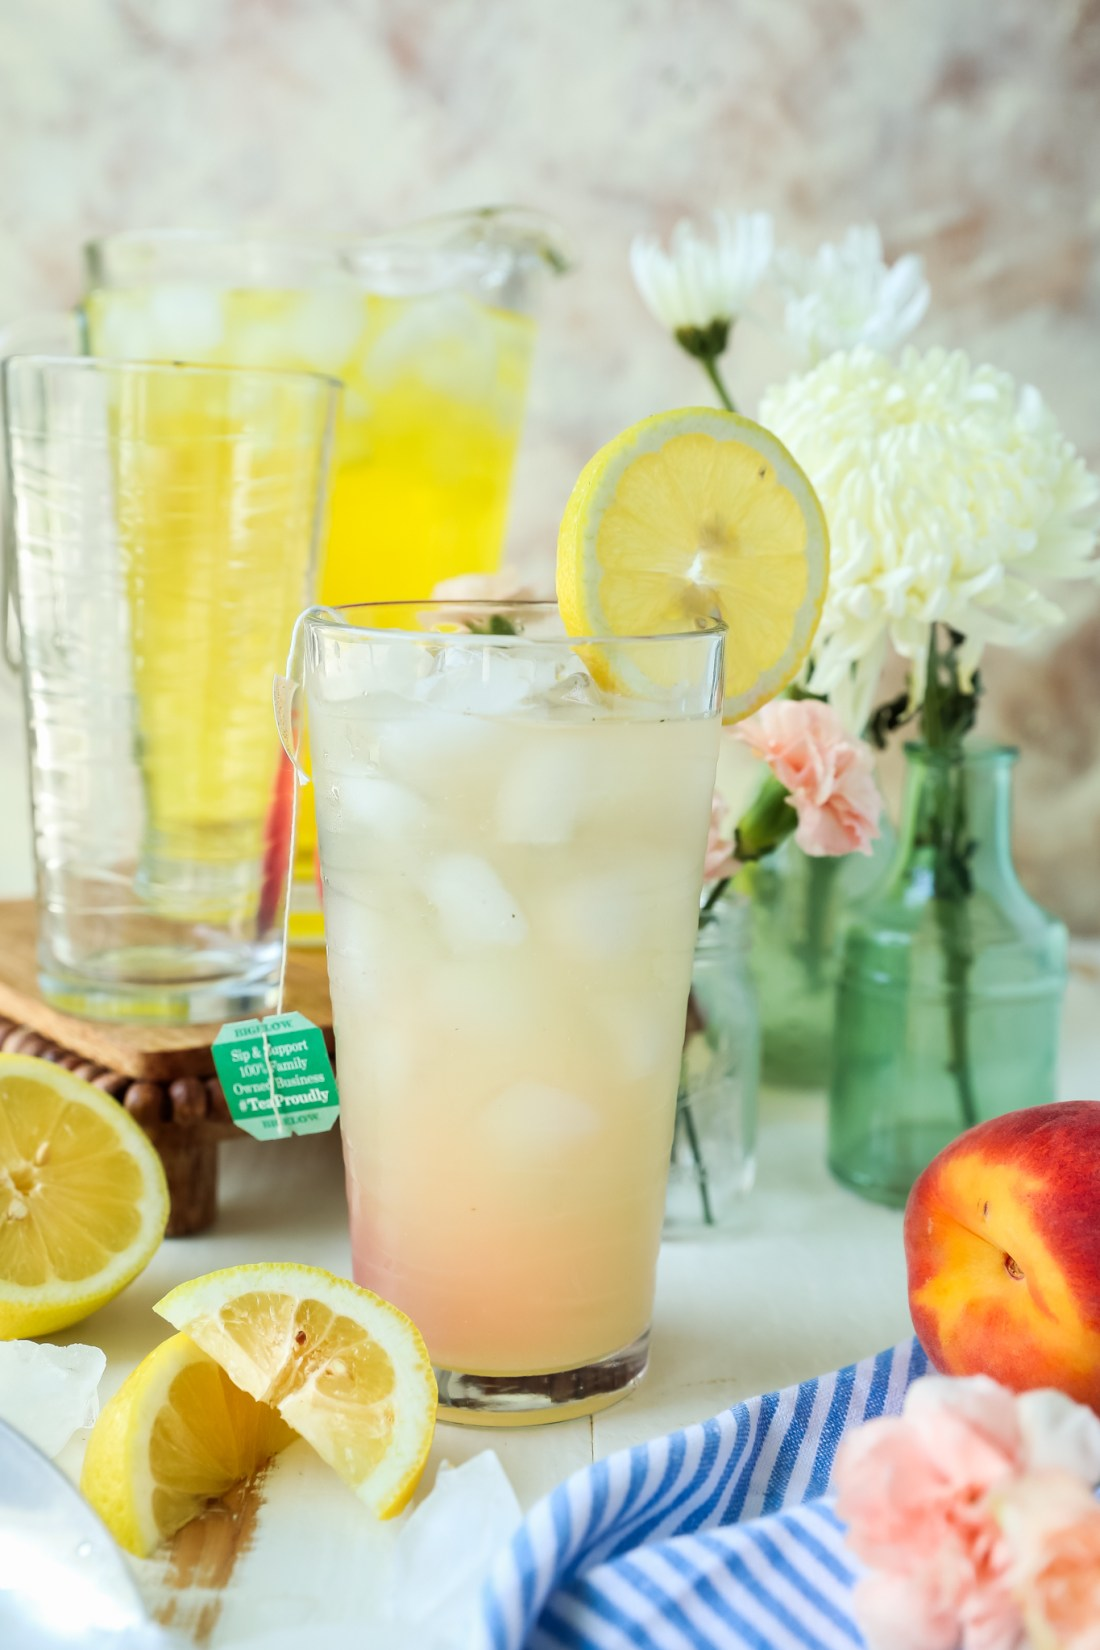 Summertime Lemonade iced Tea recipe